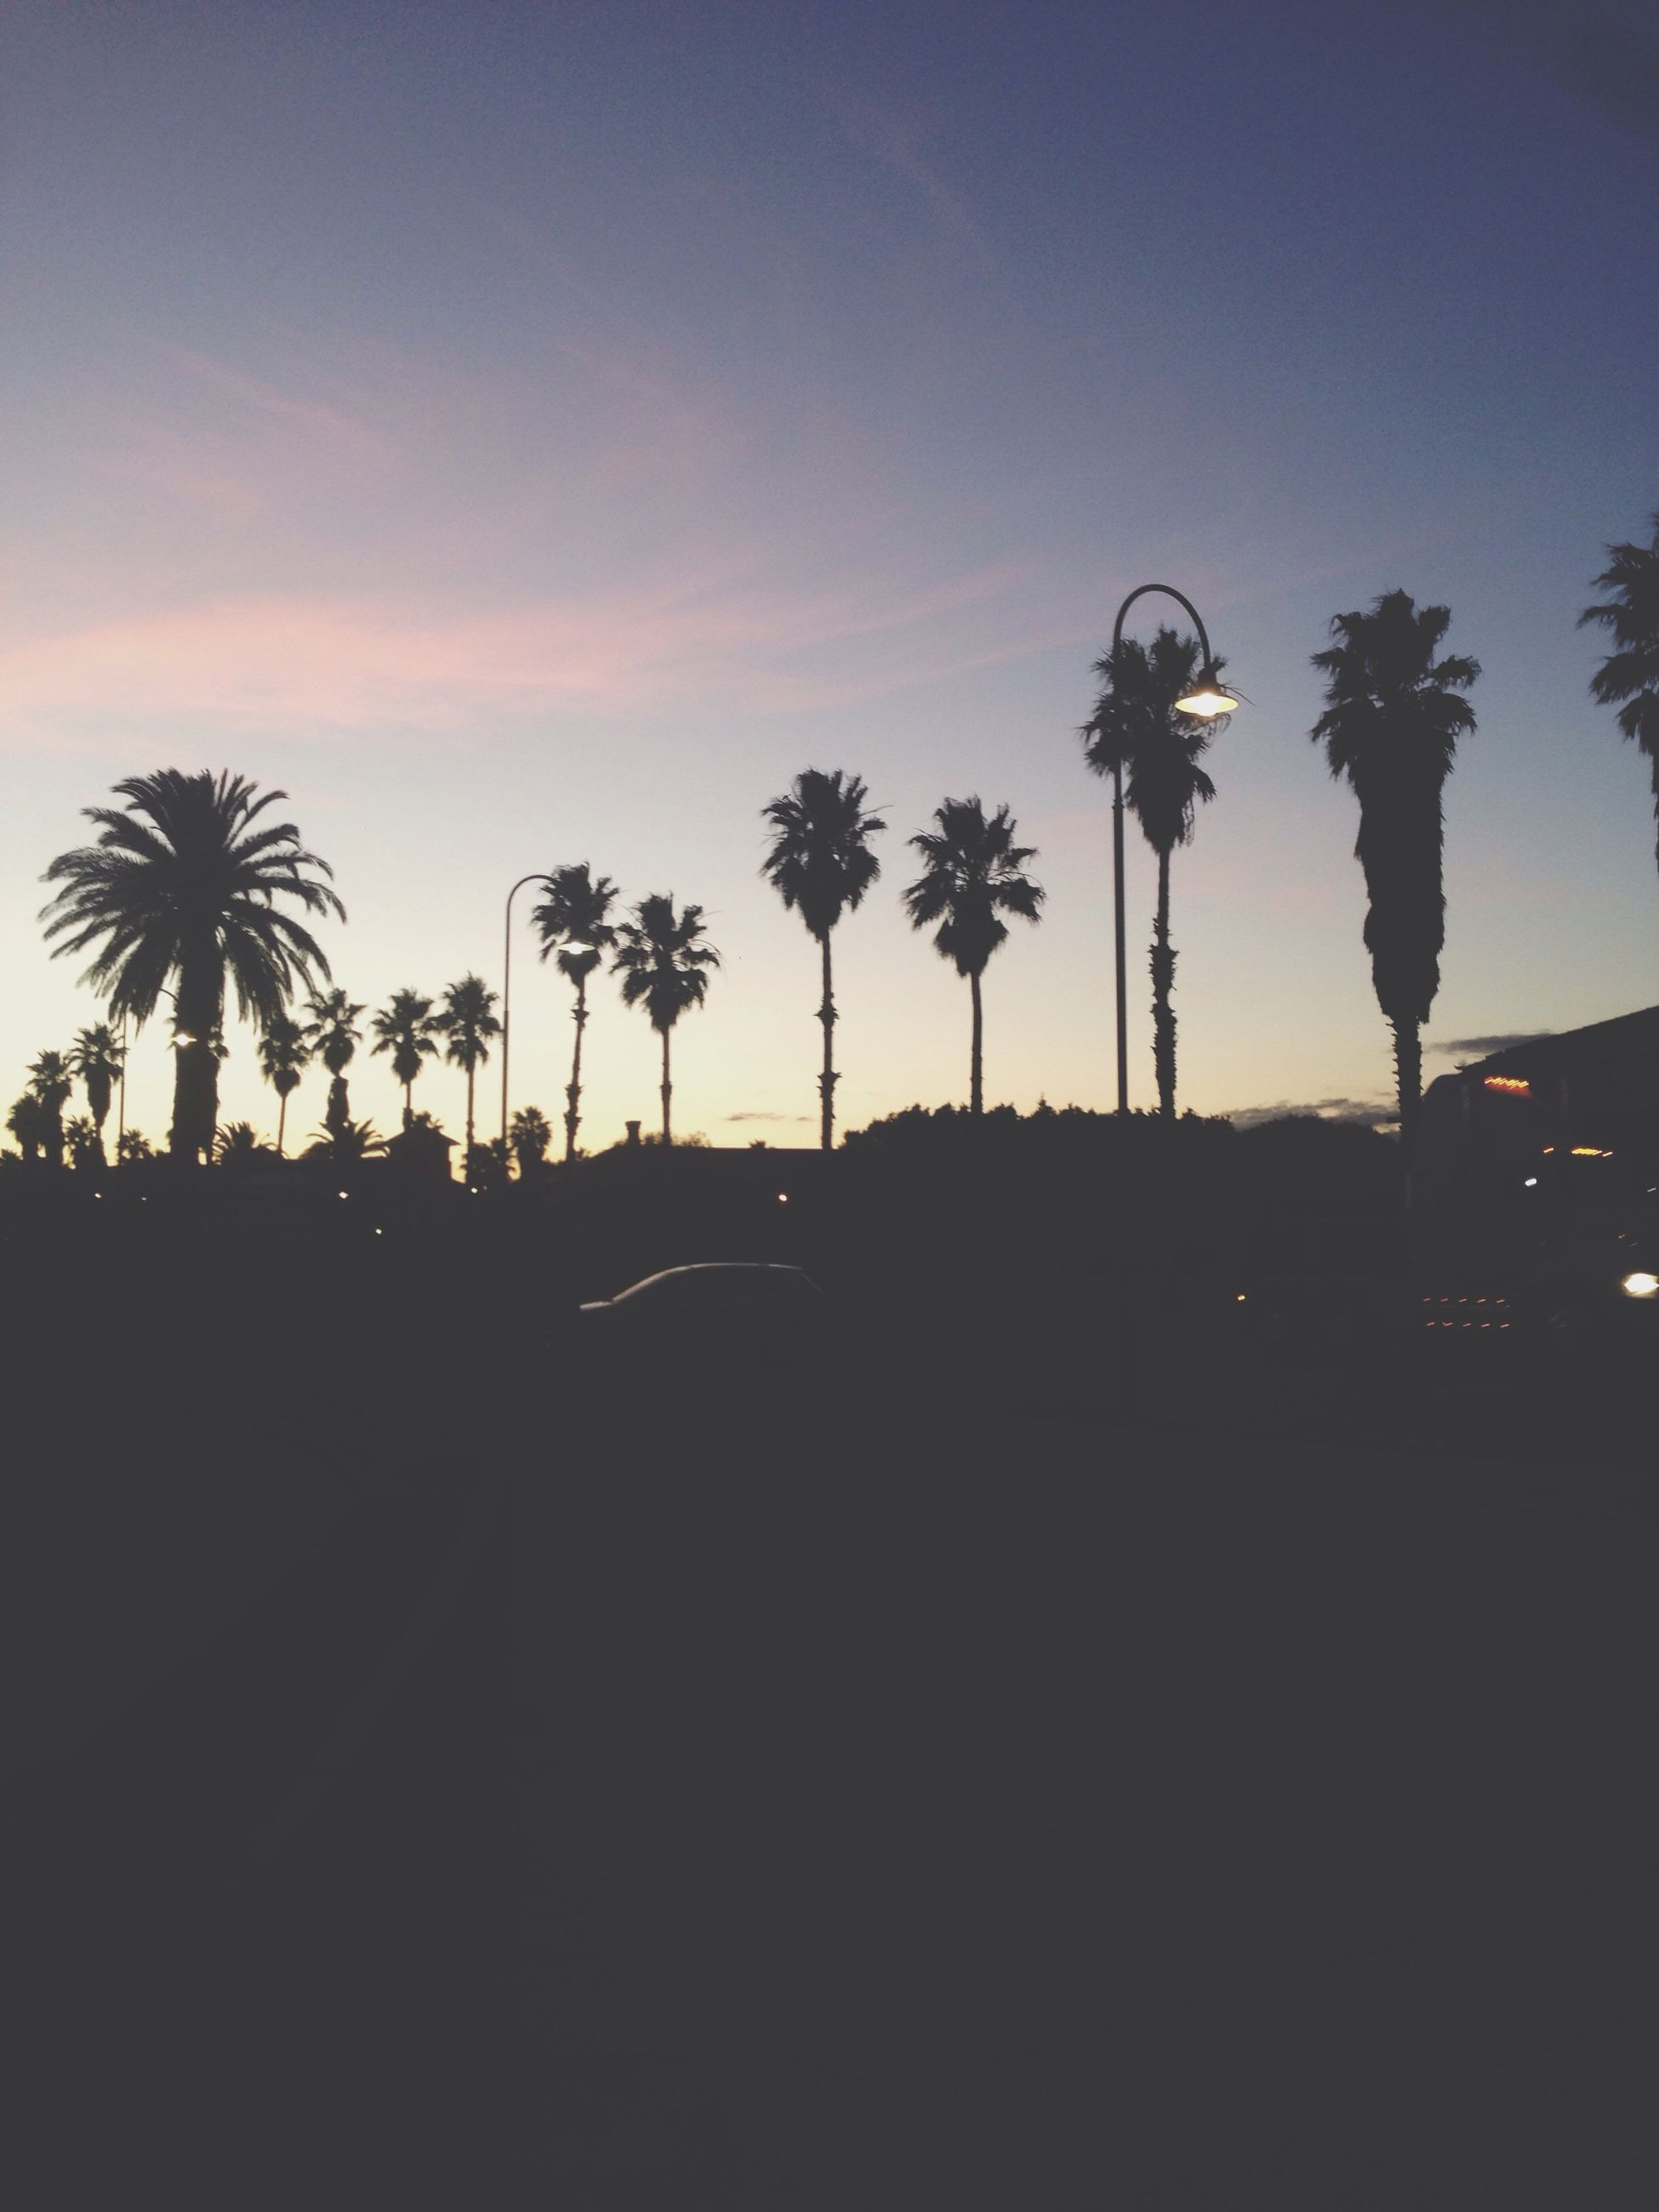 palm tree, tree, silhouette, sunset, sky, growth, street light, nature, tranquility, beauty in nature, tree trunk, tranquil scene, coconut palm tree, scenics, dusk, outdoors, road, no people, clear sky, sunlight